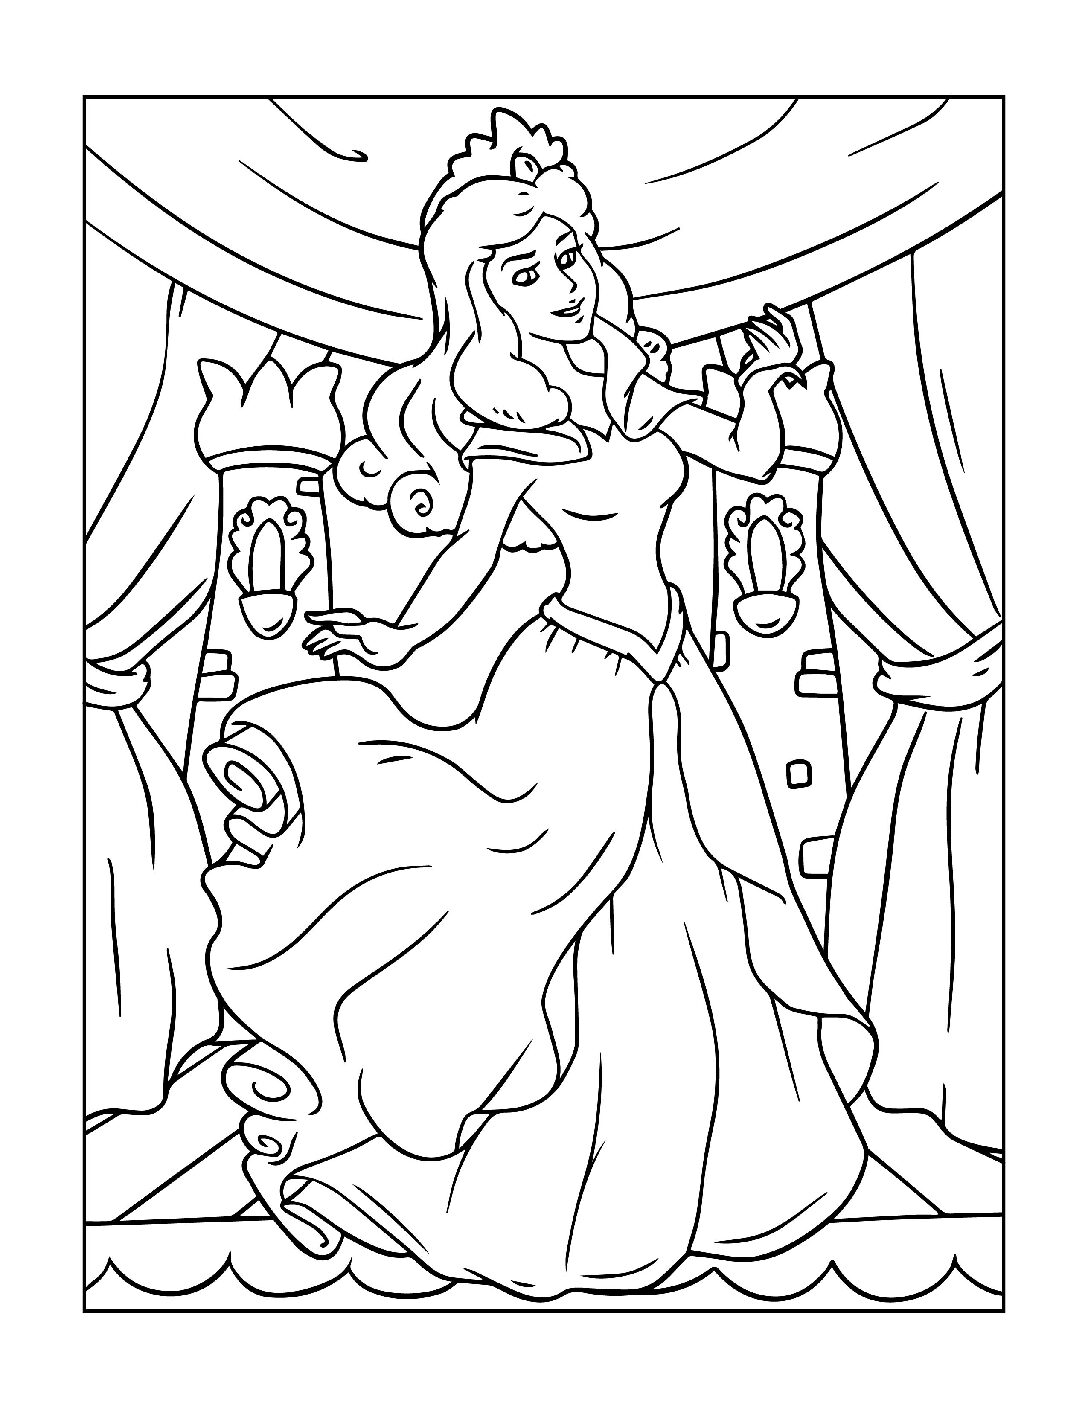 Coloring-Pages-Princess-6-01-pdf Free Printable Princesses Colouring Pages